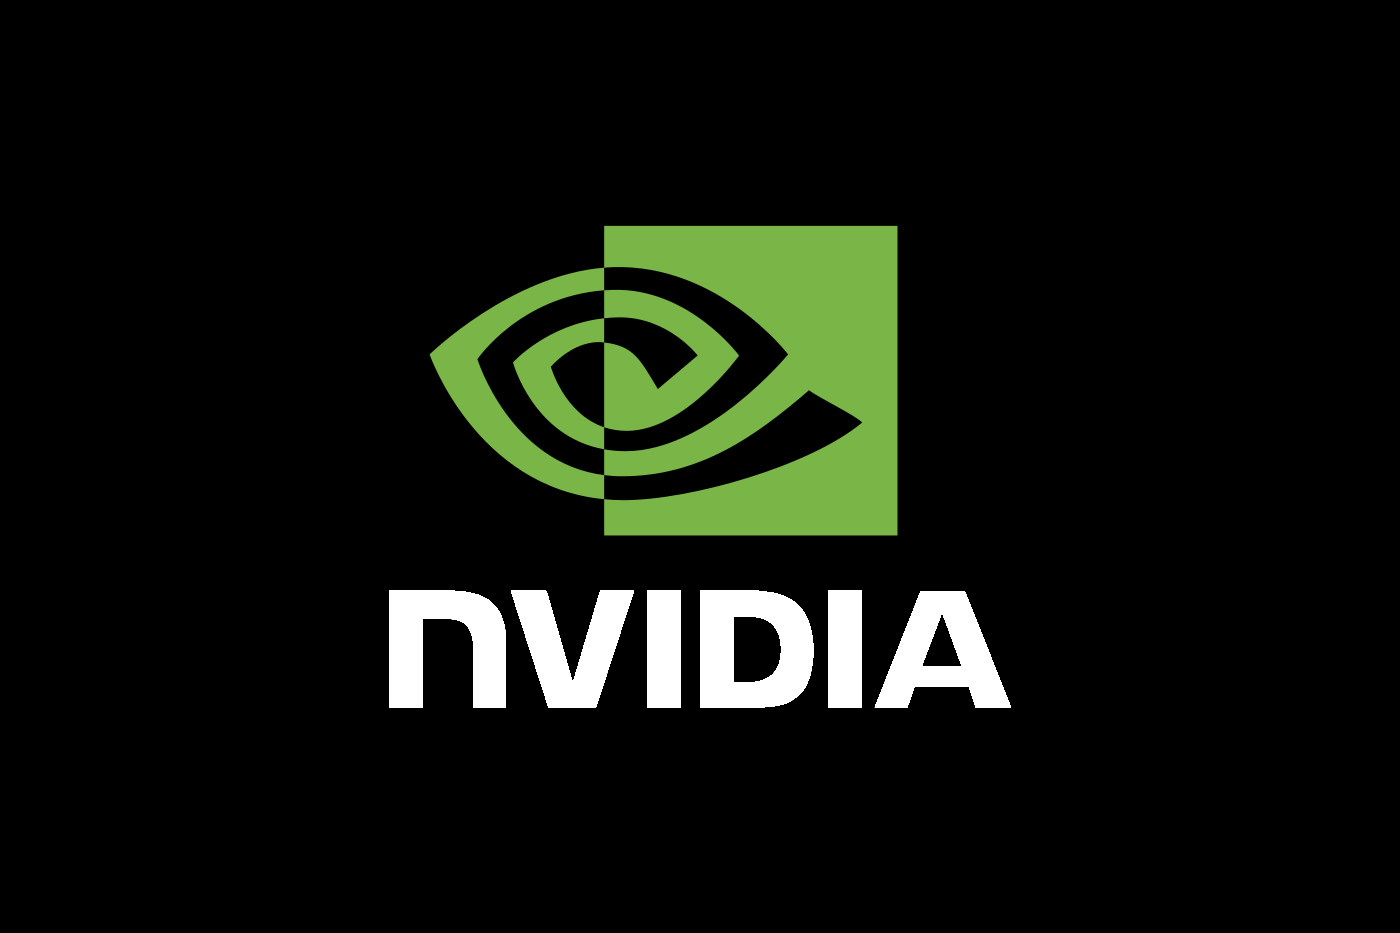 Linux Nvidia Drivers Tips and Tricks